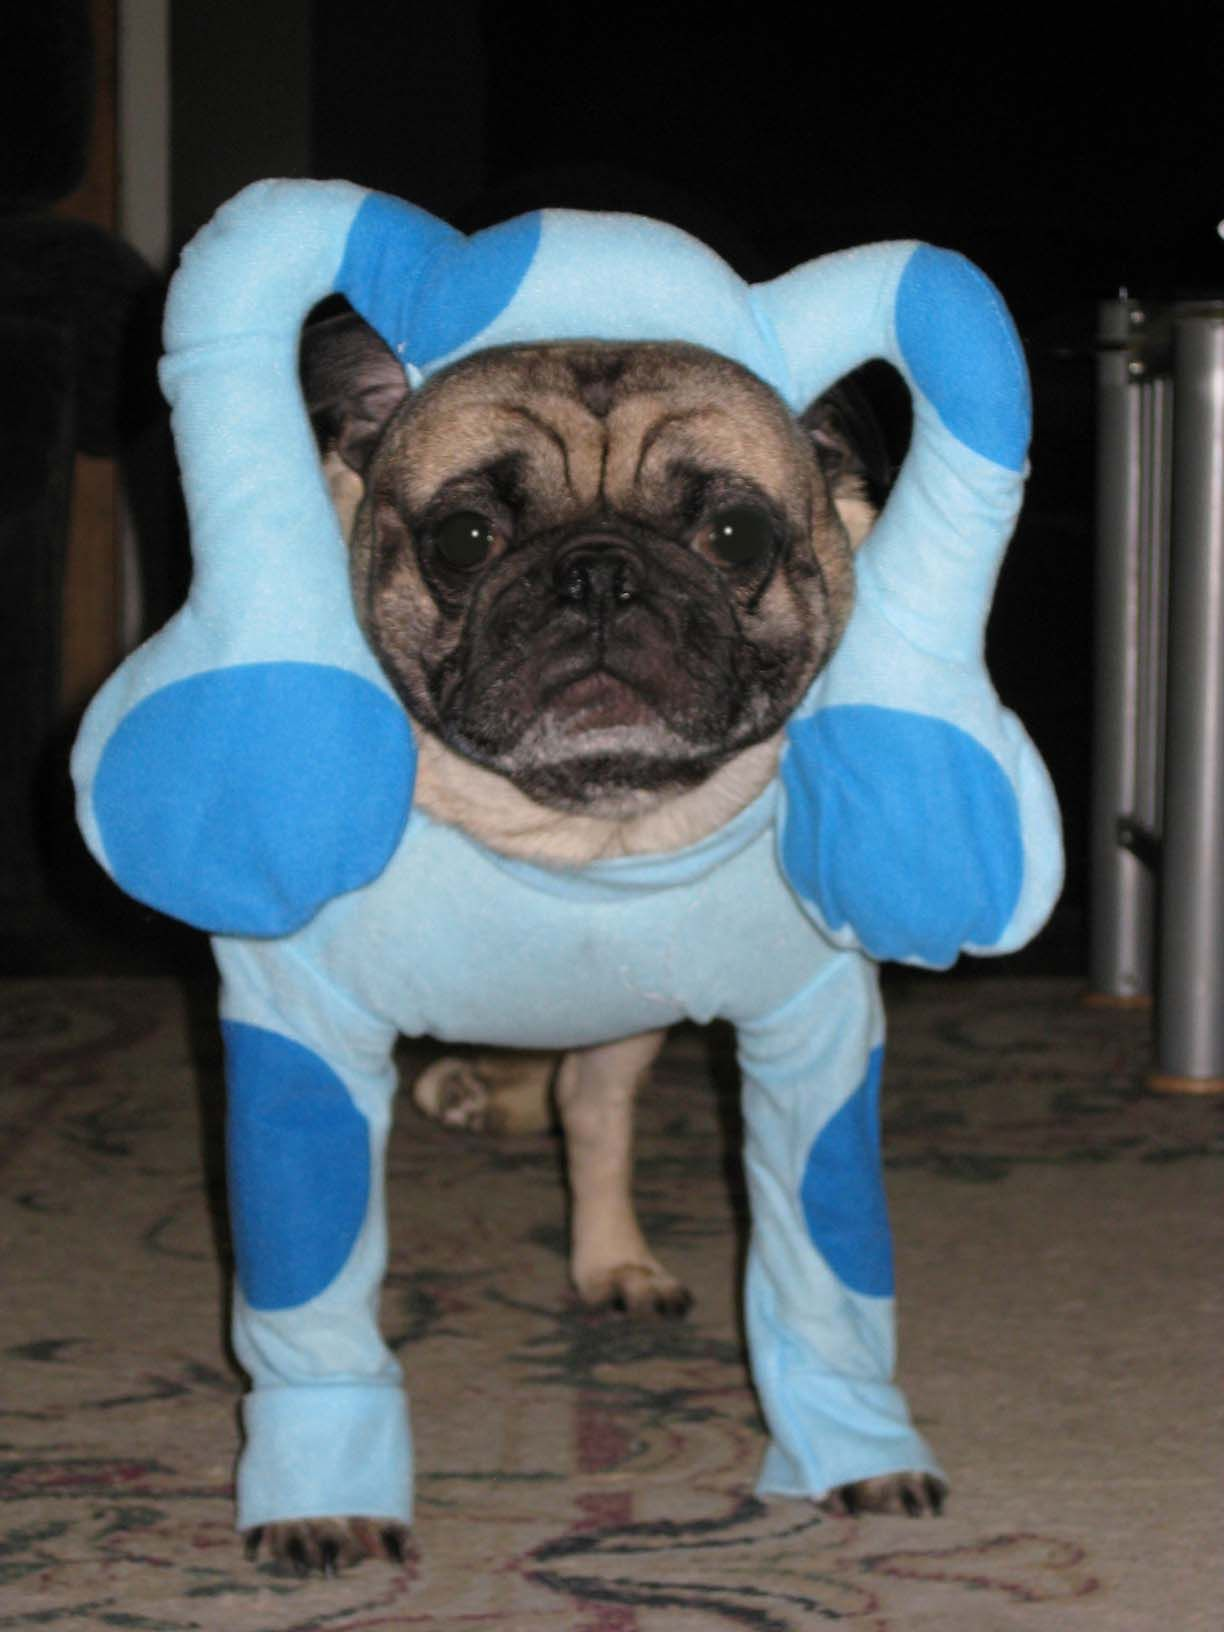 Blue S Clues Costume For Dog I Love It A Bunch More Dog